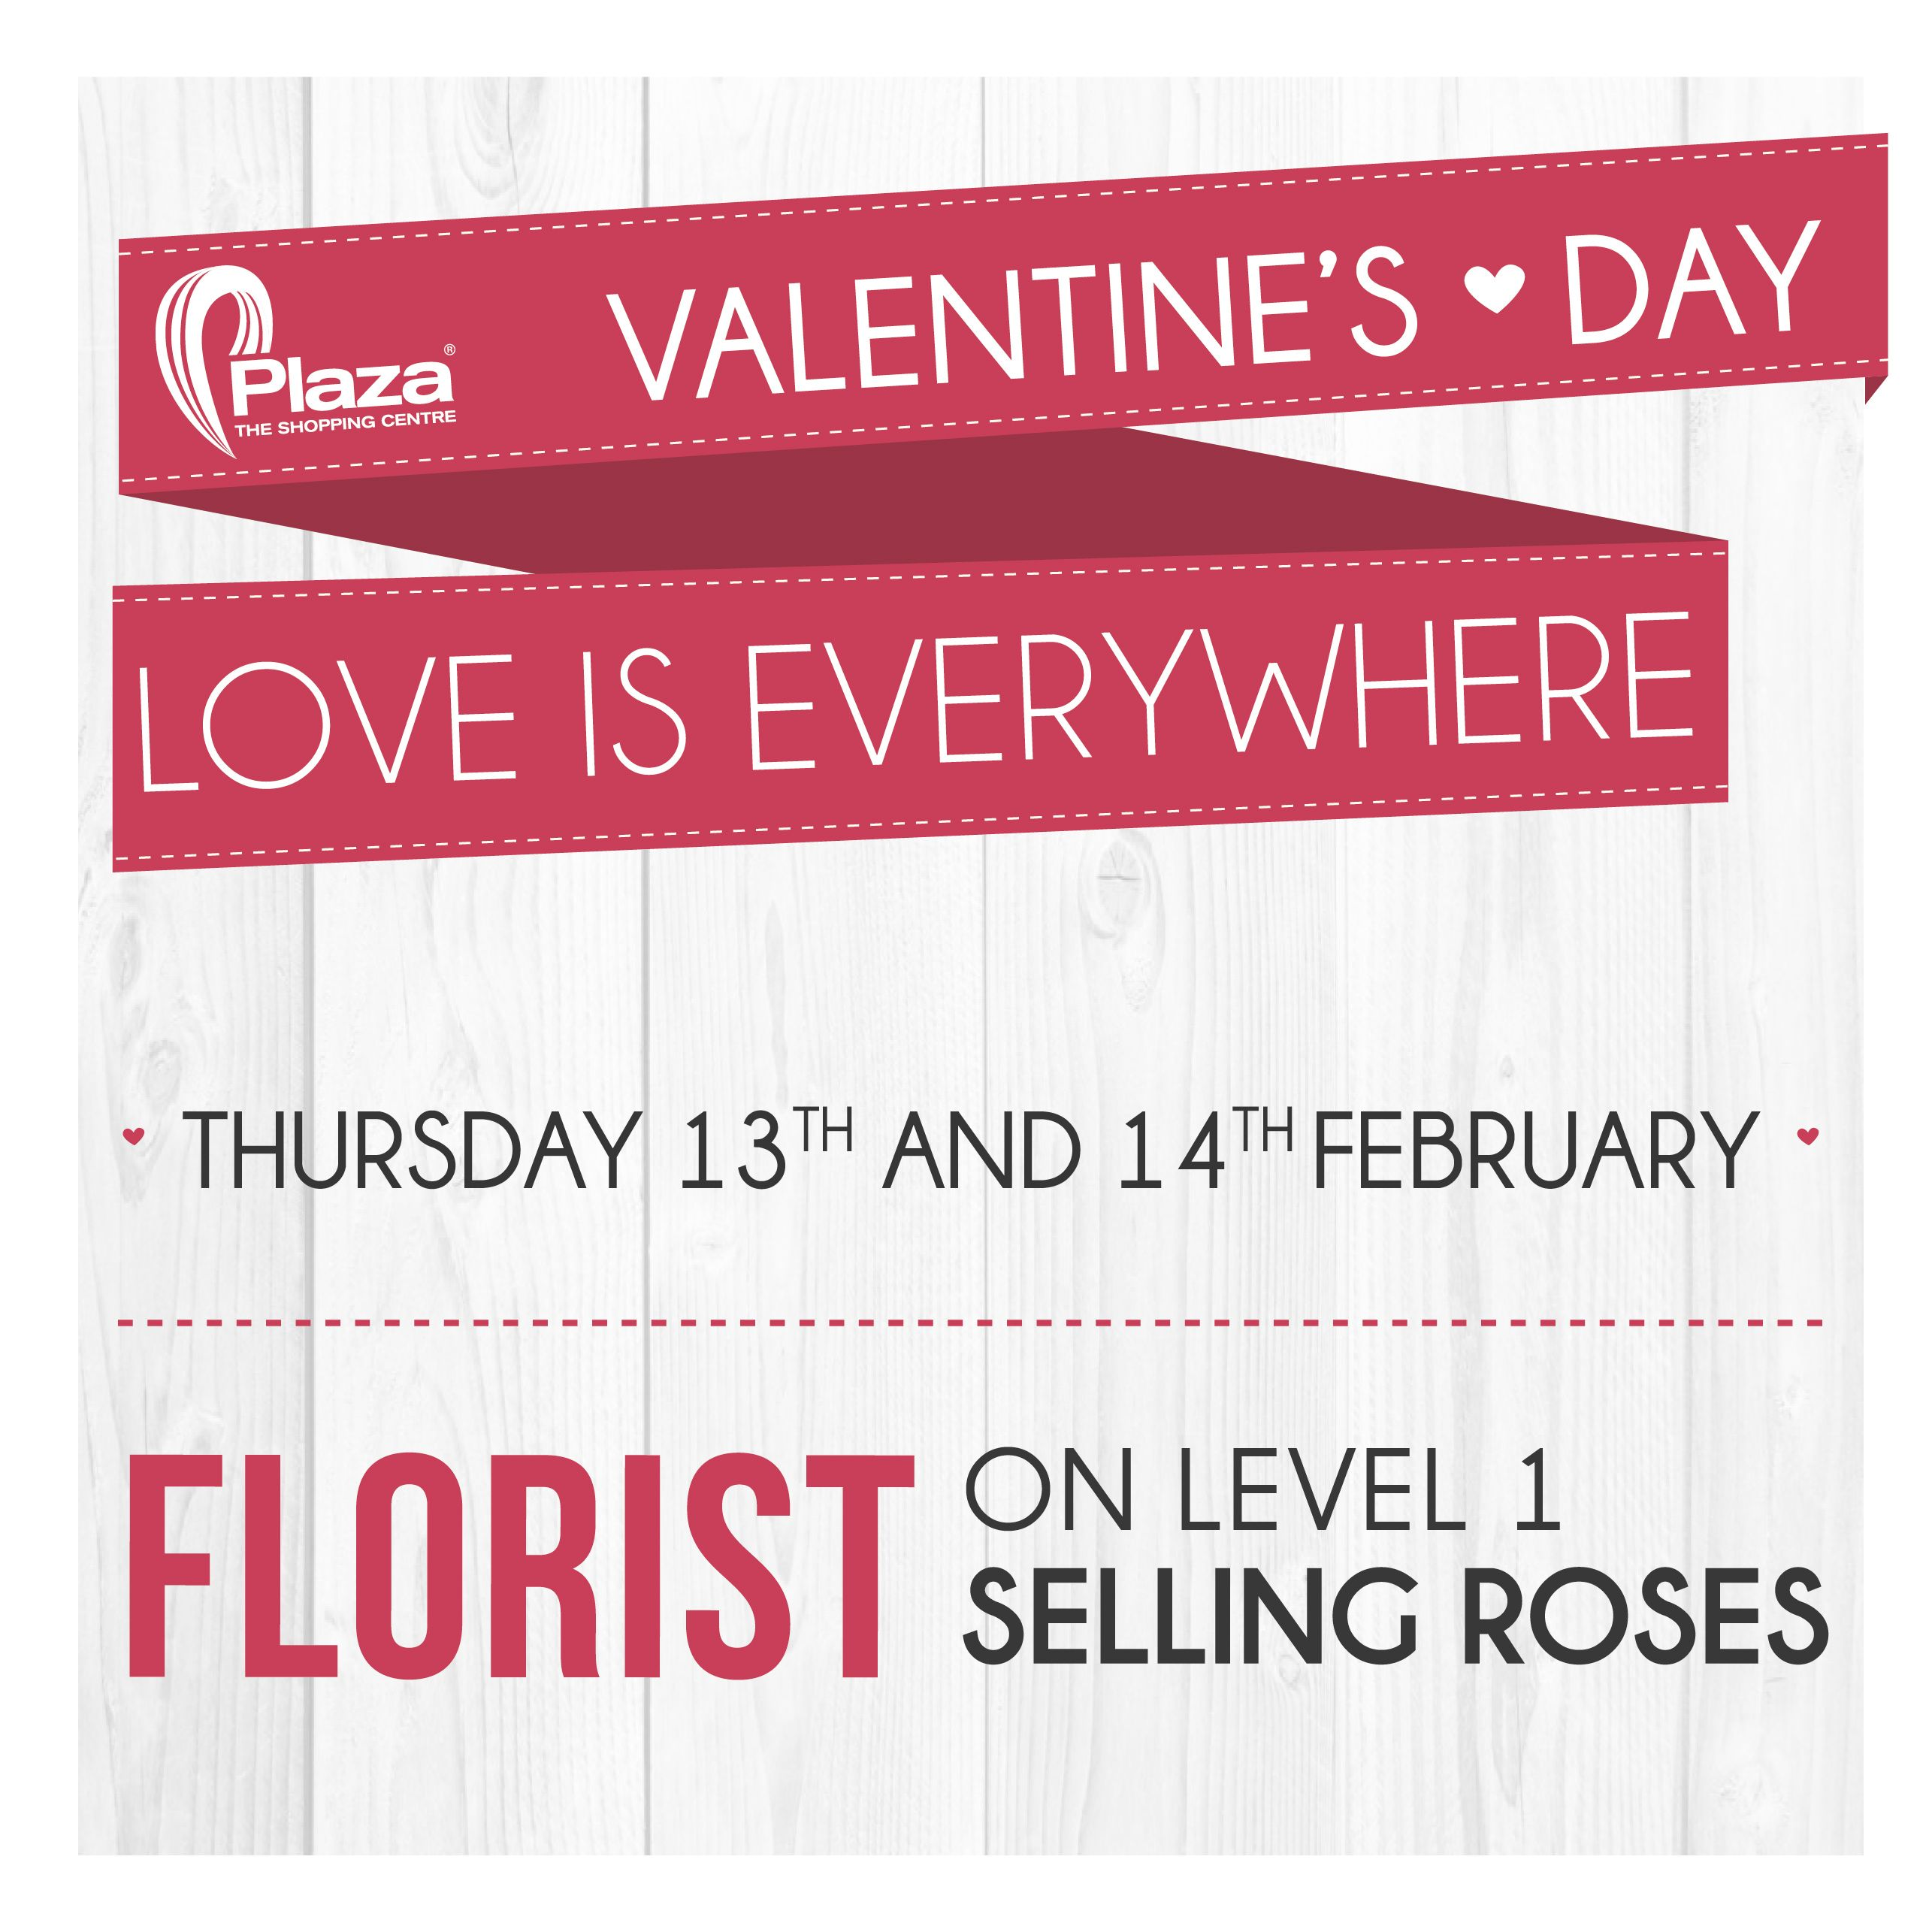 Valentine's Day Events, Prices, Shopping at The Plaza Shopping Centre Sliema